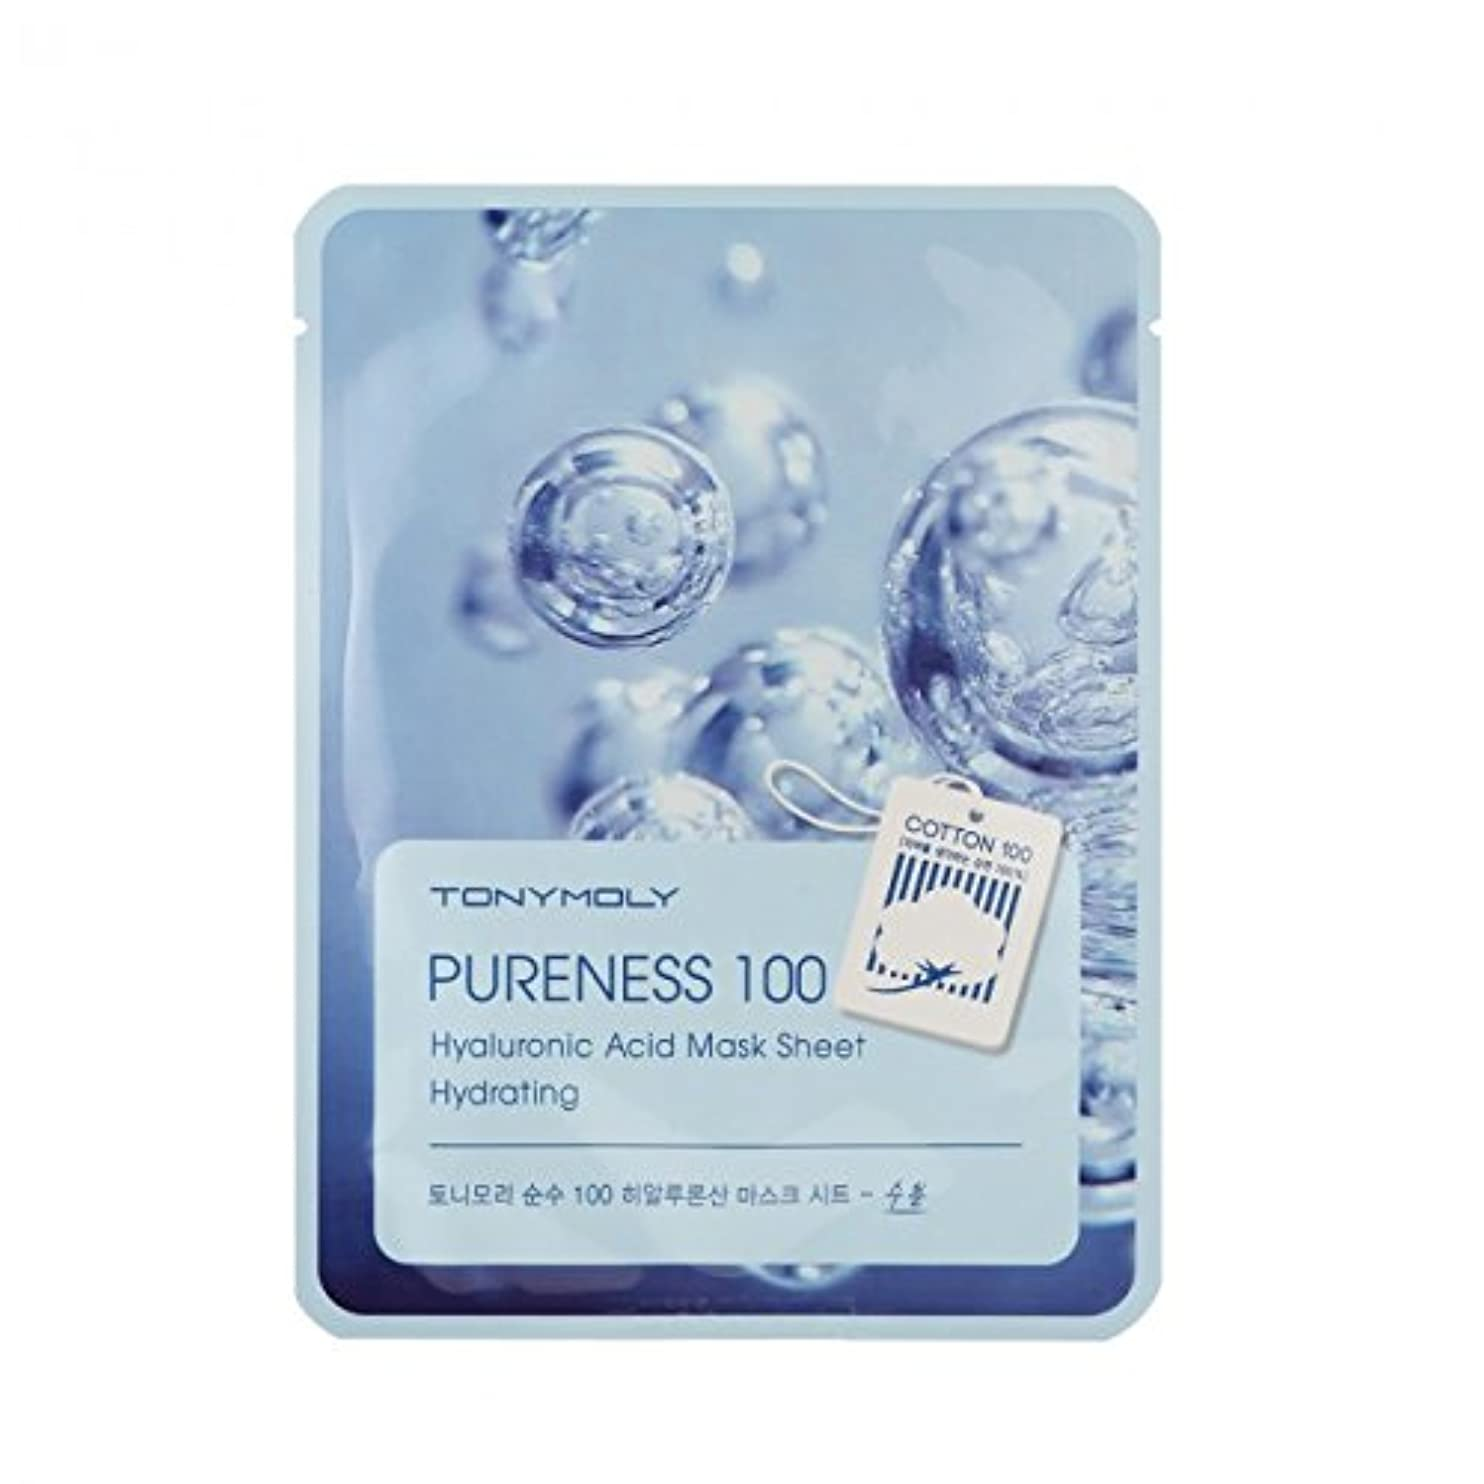 しみママ屈辱するTONYMOLY Pureness 100 Hyaluronic Acid Mask Sheet Hydrating (並行輸入品)